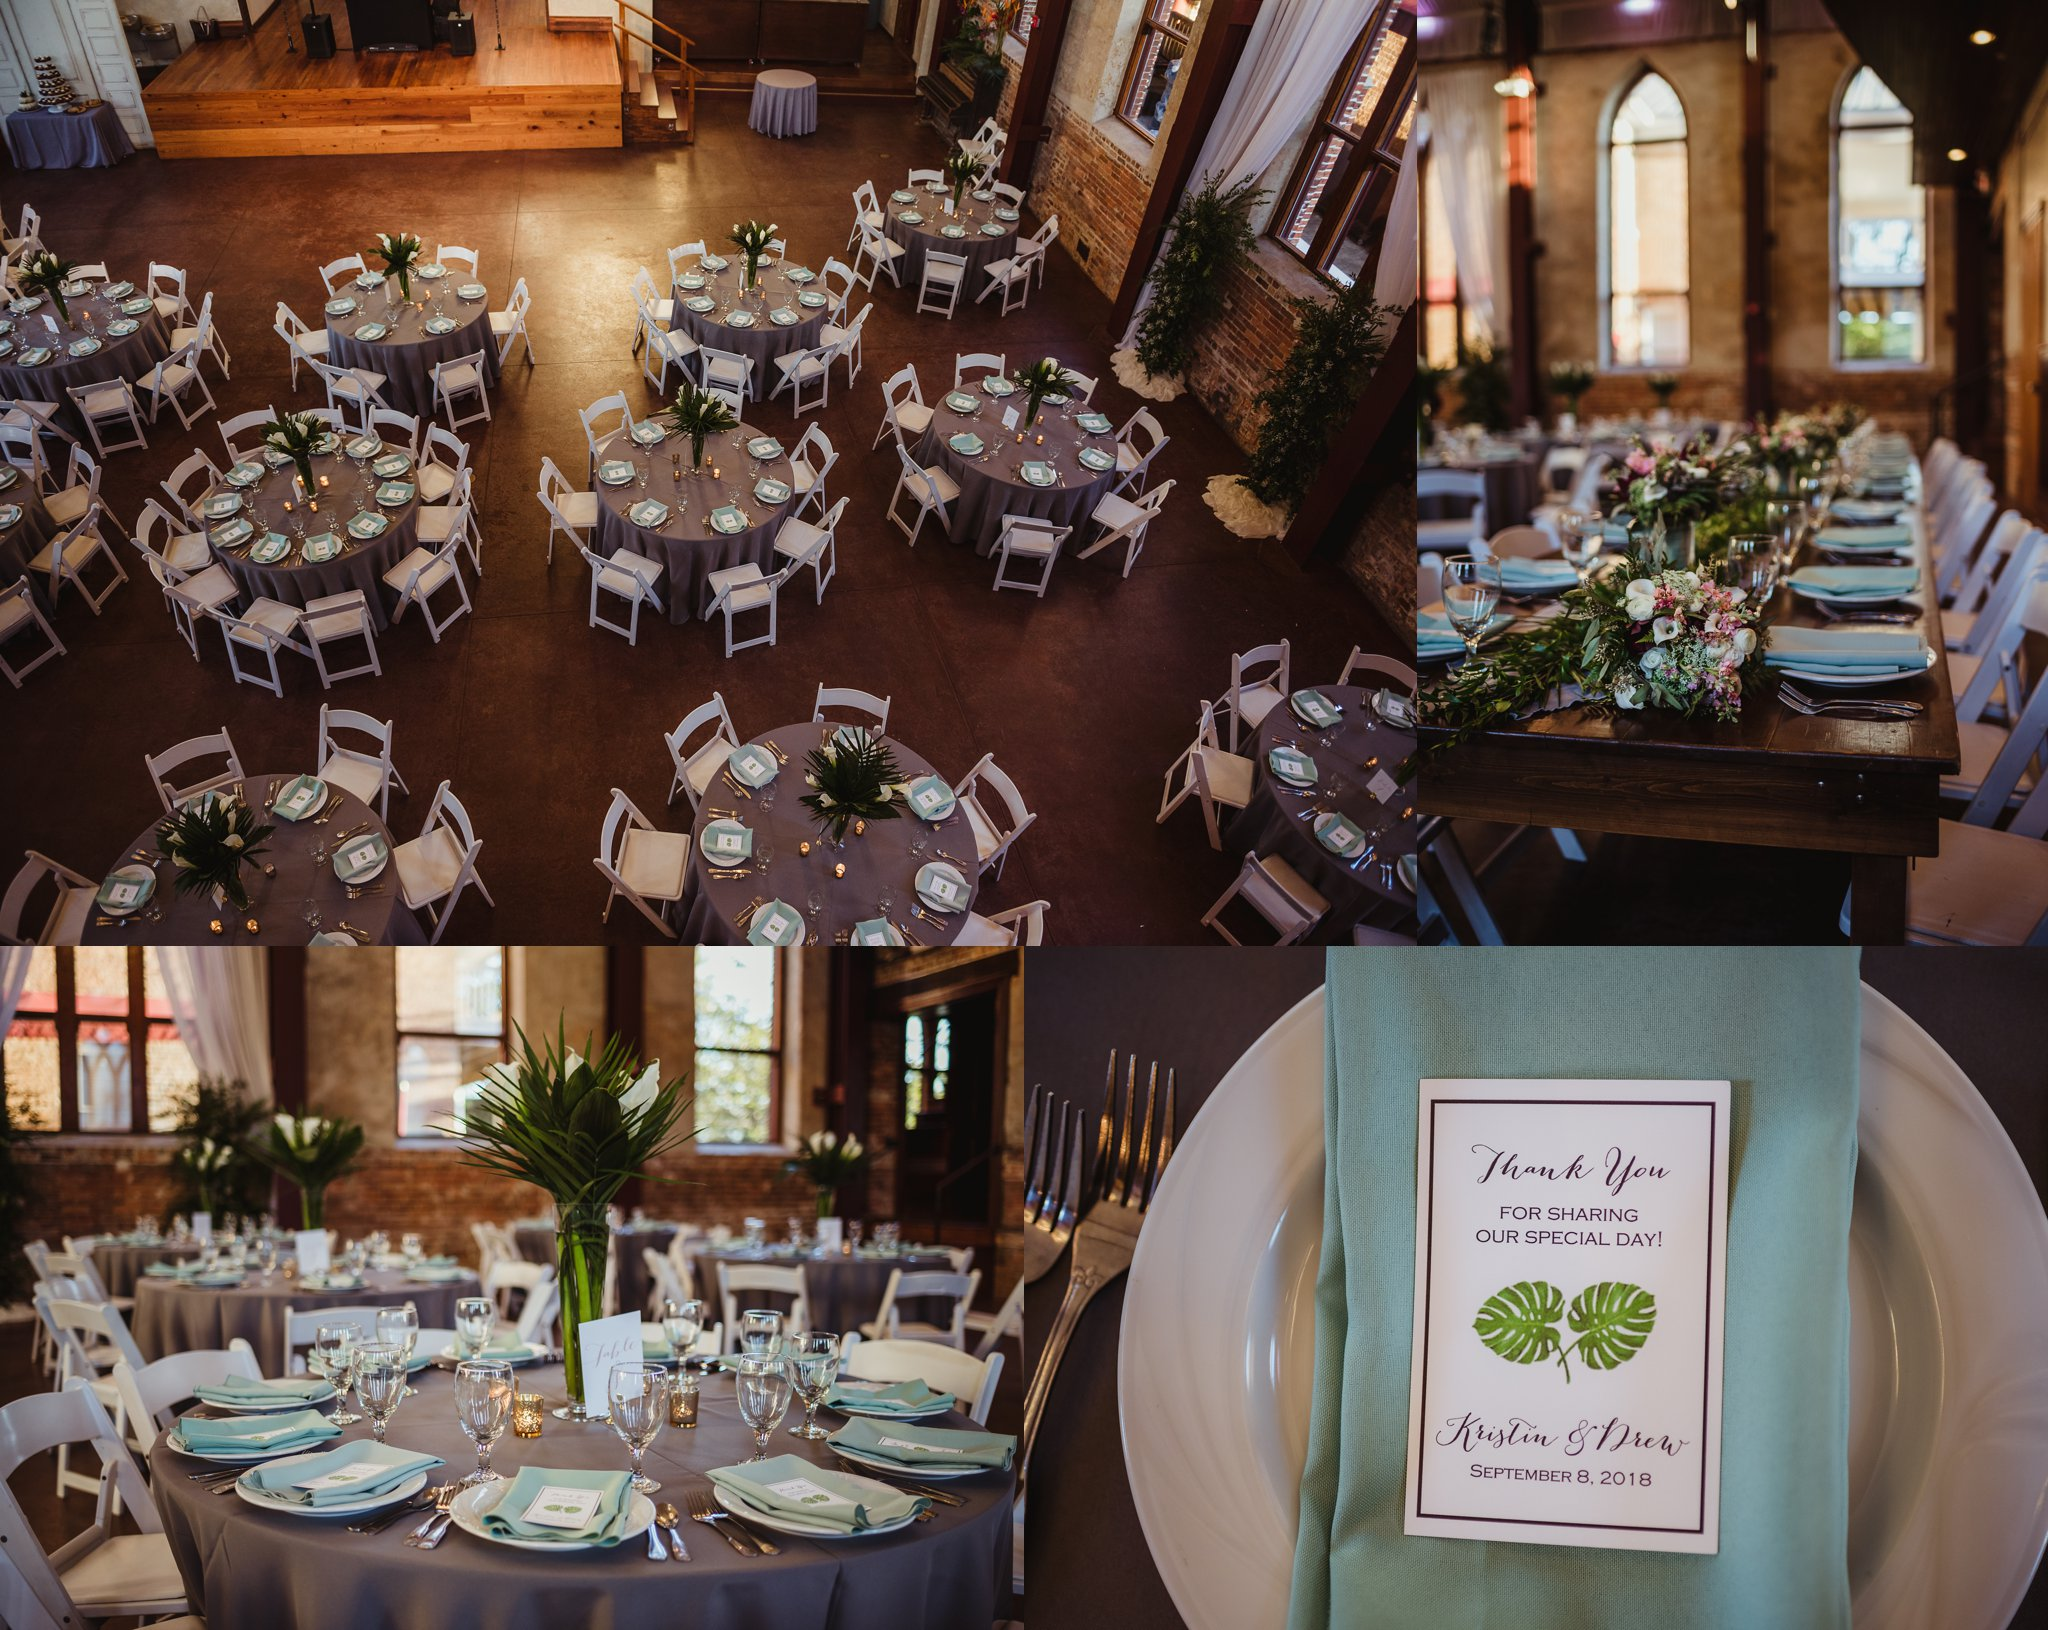 Details of the reception include seagreen napkins, white calla lilies, and palm fronds at the wedding reception in Wilmington, NC, photos by Rose Trail Images.